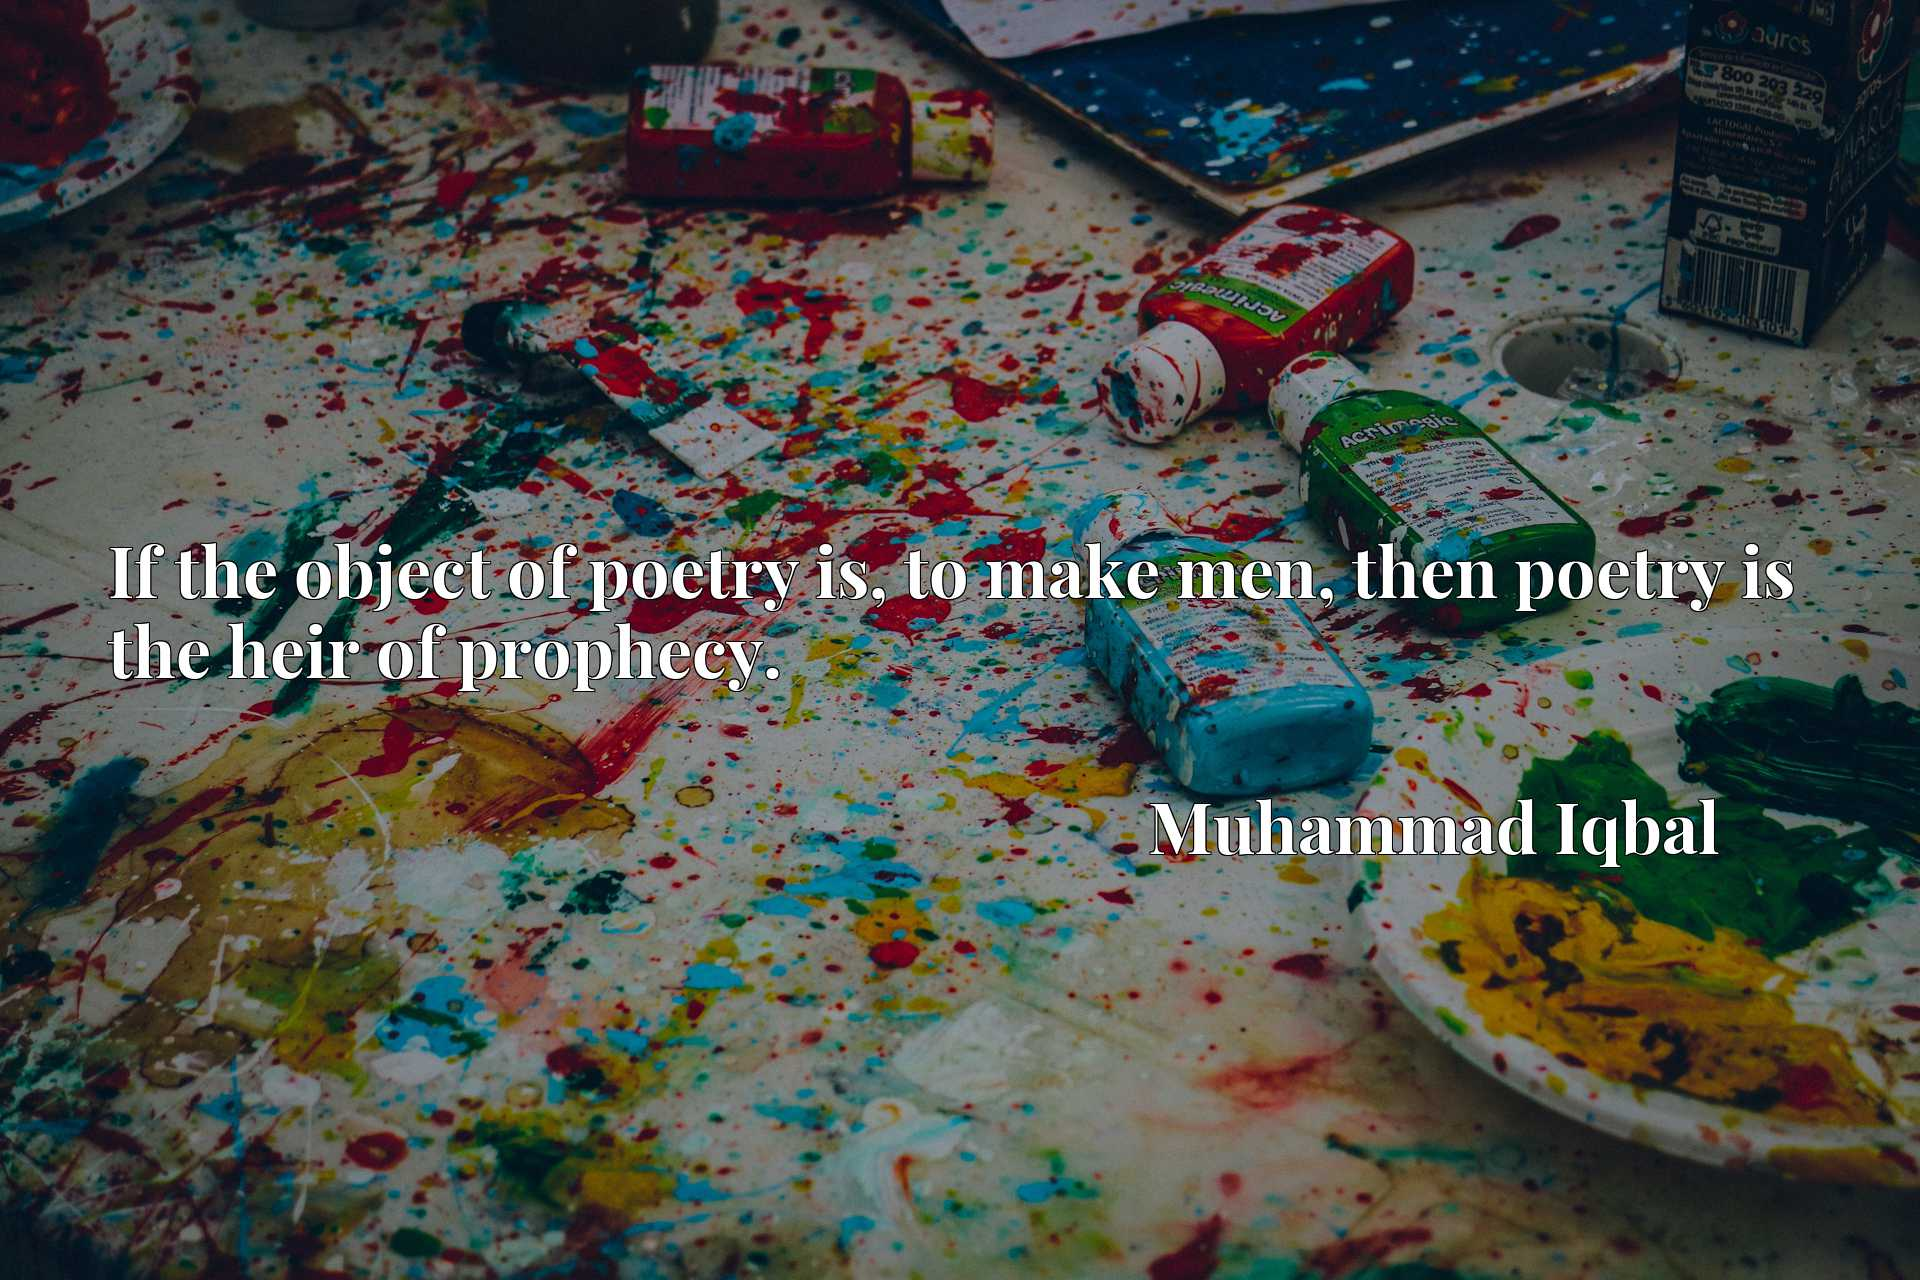 Quote Picture :If the object of poetry is, to make men, then poetry is the heir of prophecy.